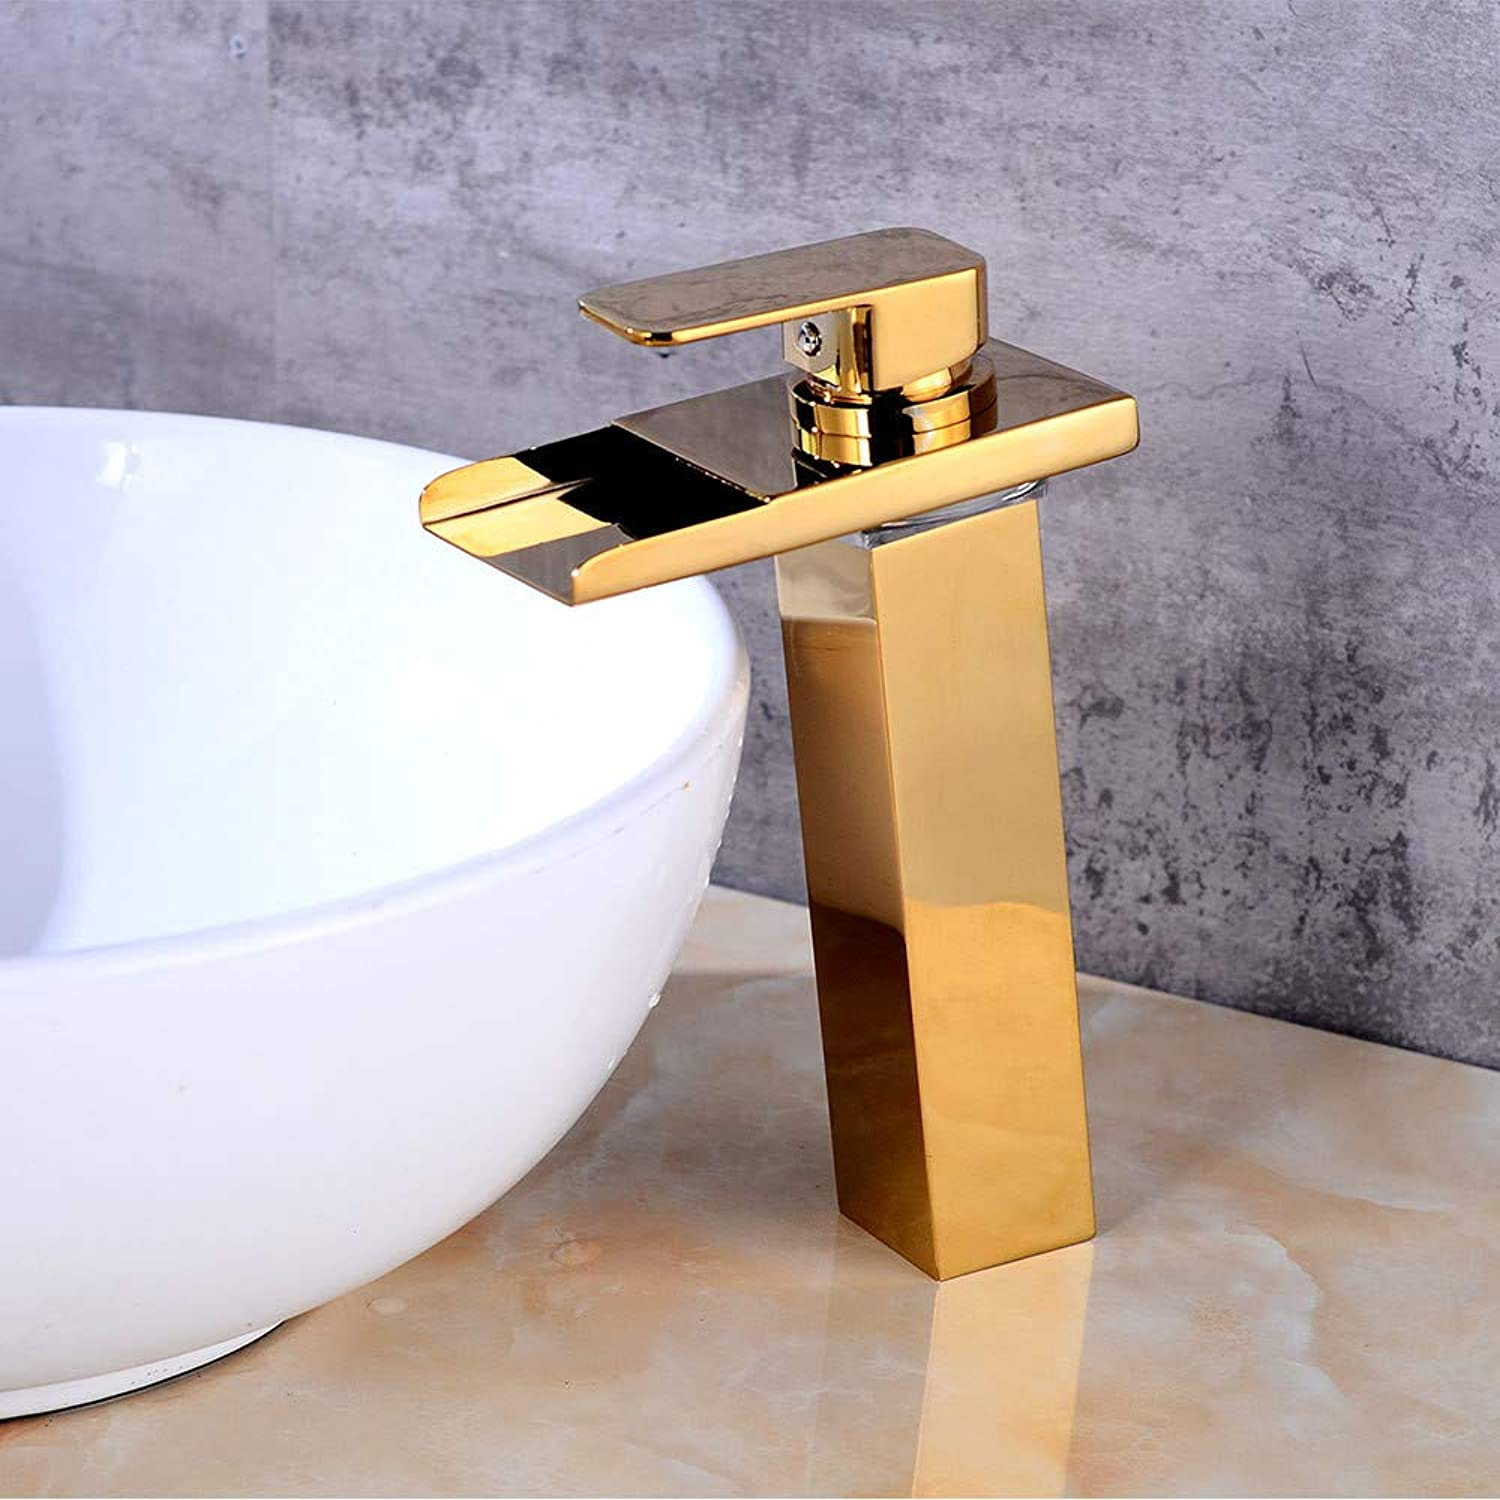 redOOY Taps Faucet Basin Full Copper gold Basin Faucet Bathroom Led Waterfall Faucet Wash Basin Hot And Cold Water Faucet gold